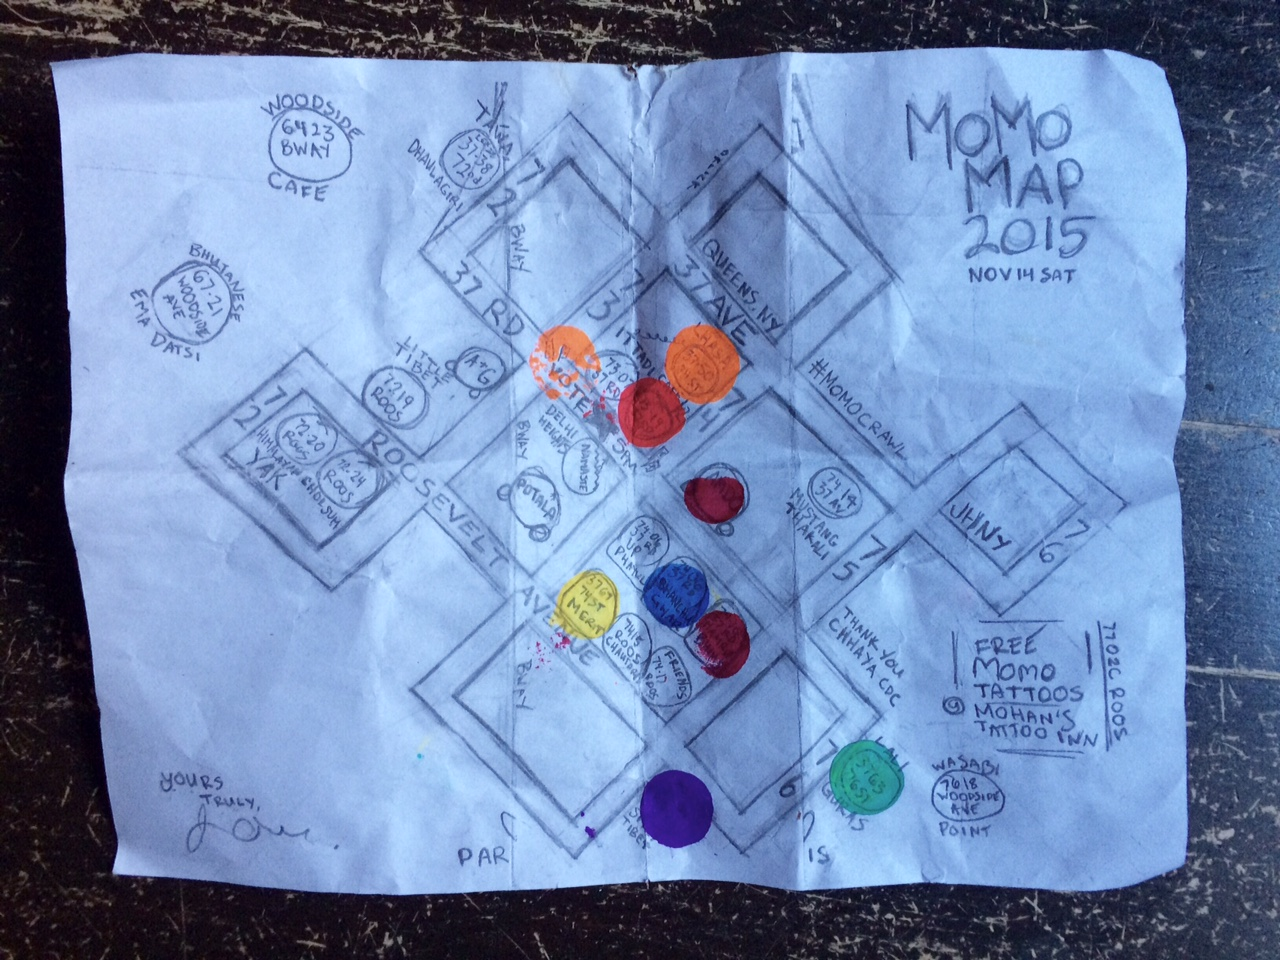 Momo Crawl map